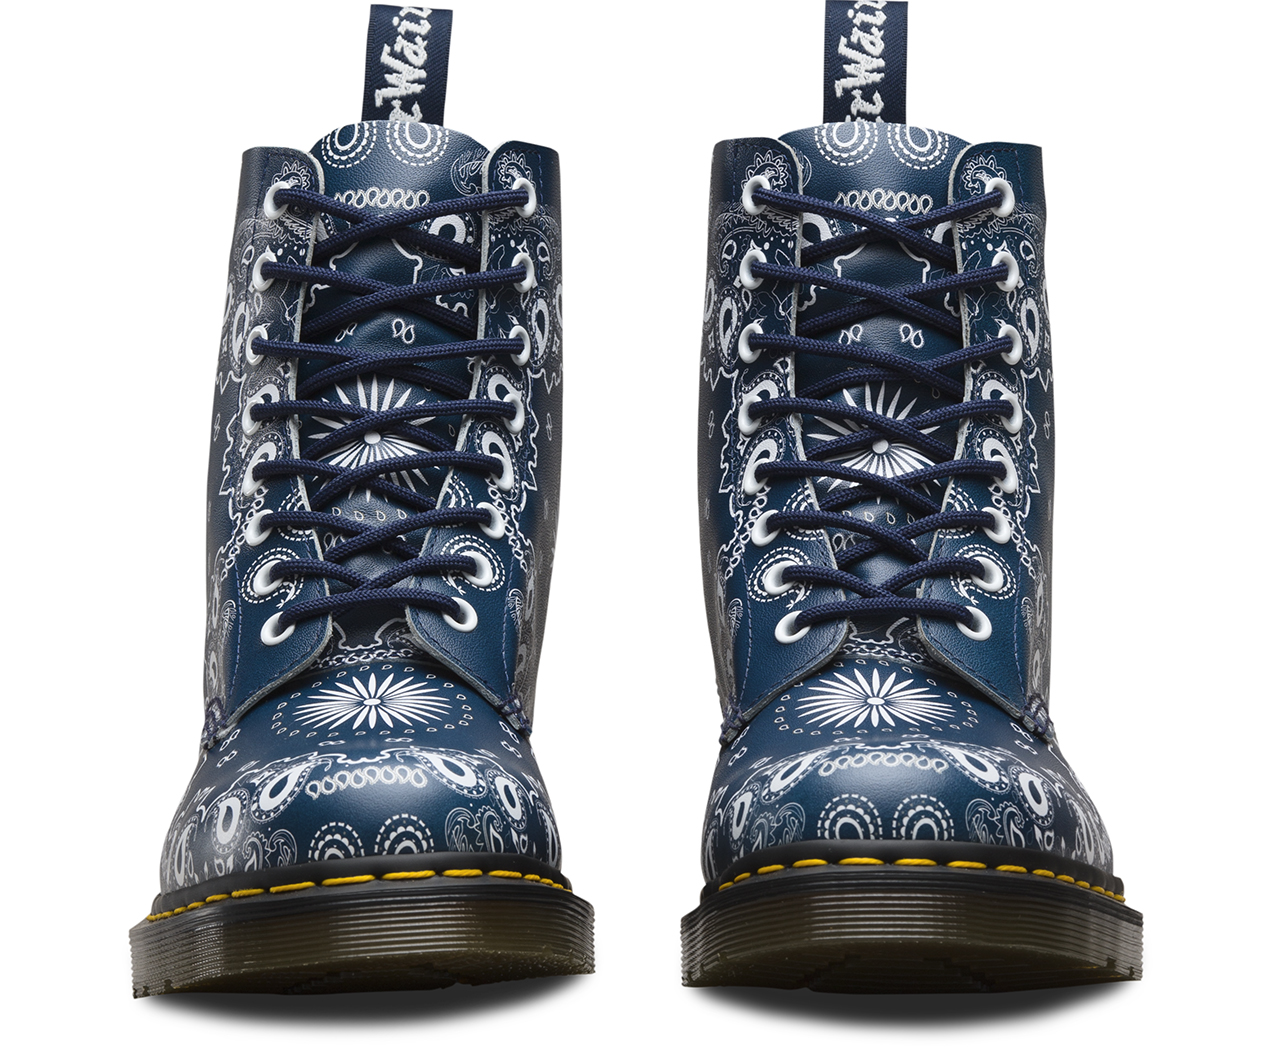 Pascal Bandana Men S Boots Official Dr Martens Store Uk